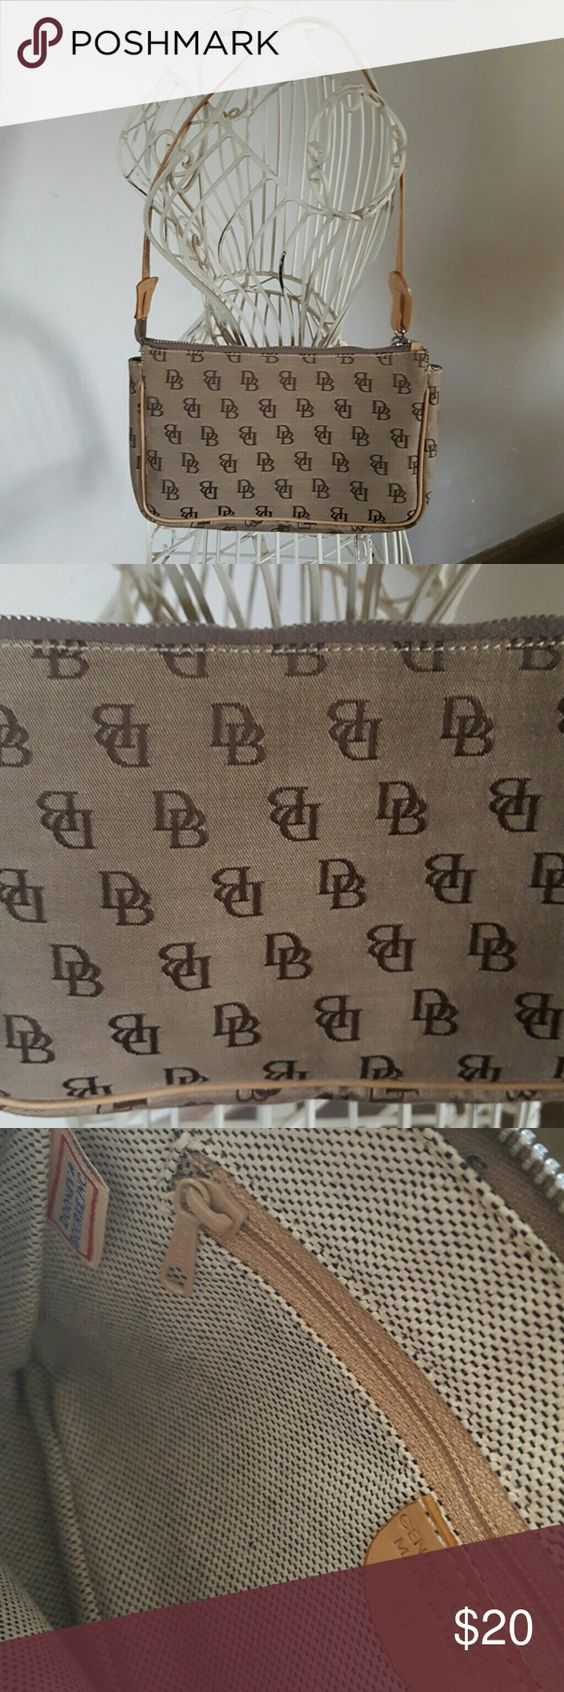 Vintage Dooney & Bourke Canvas mini purse Authentic Vintage Dooney & Bourke Canvas mini purse, leather made in Italy, style is 819, tan with brown pattern, 9 1/2in in width, 6in in height, hardly used! Dooney & Bourke Bags Mini Bags